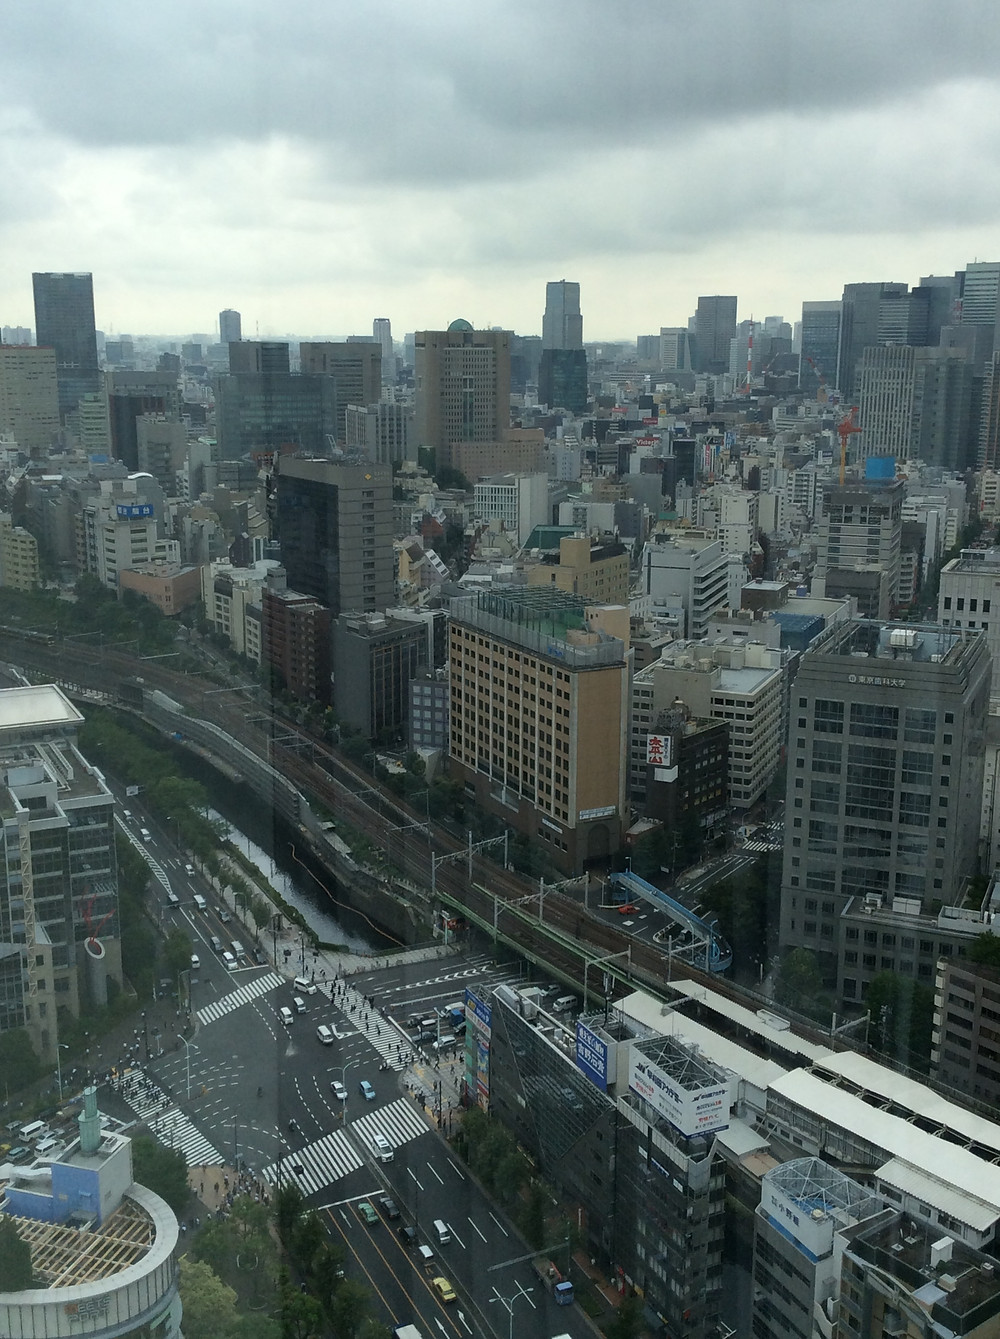 Tokyo Dome Hotel view of Tokyo